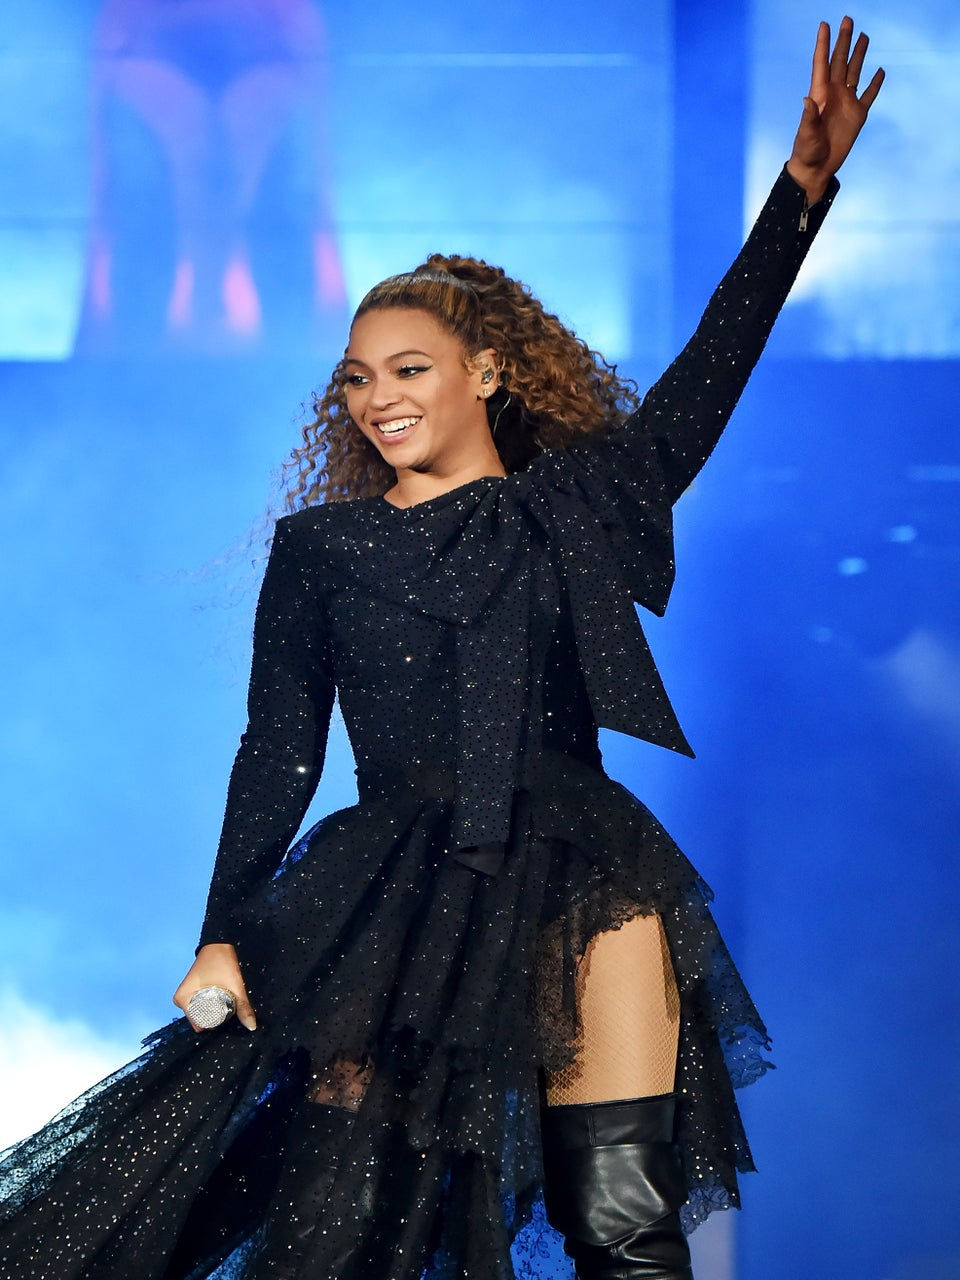 When Beyonce Asked This Fan To Dance To Her Choreography, He Didn't Disappoint!